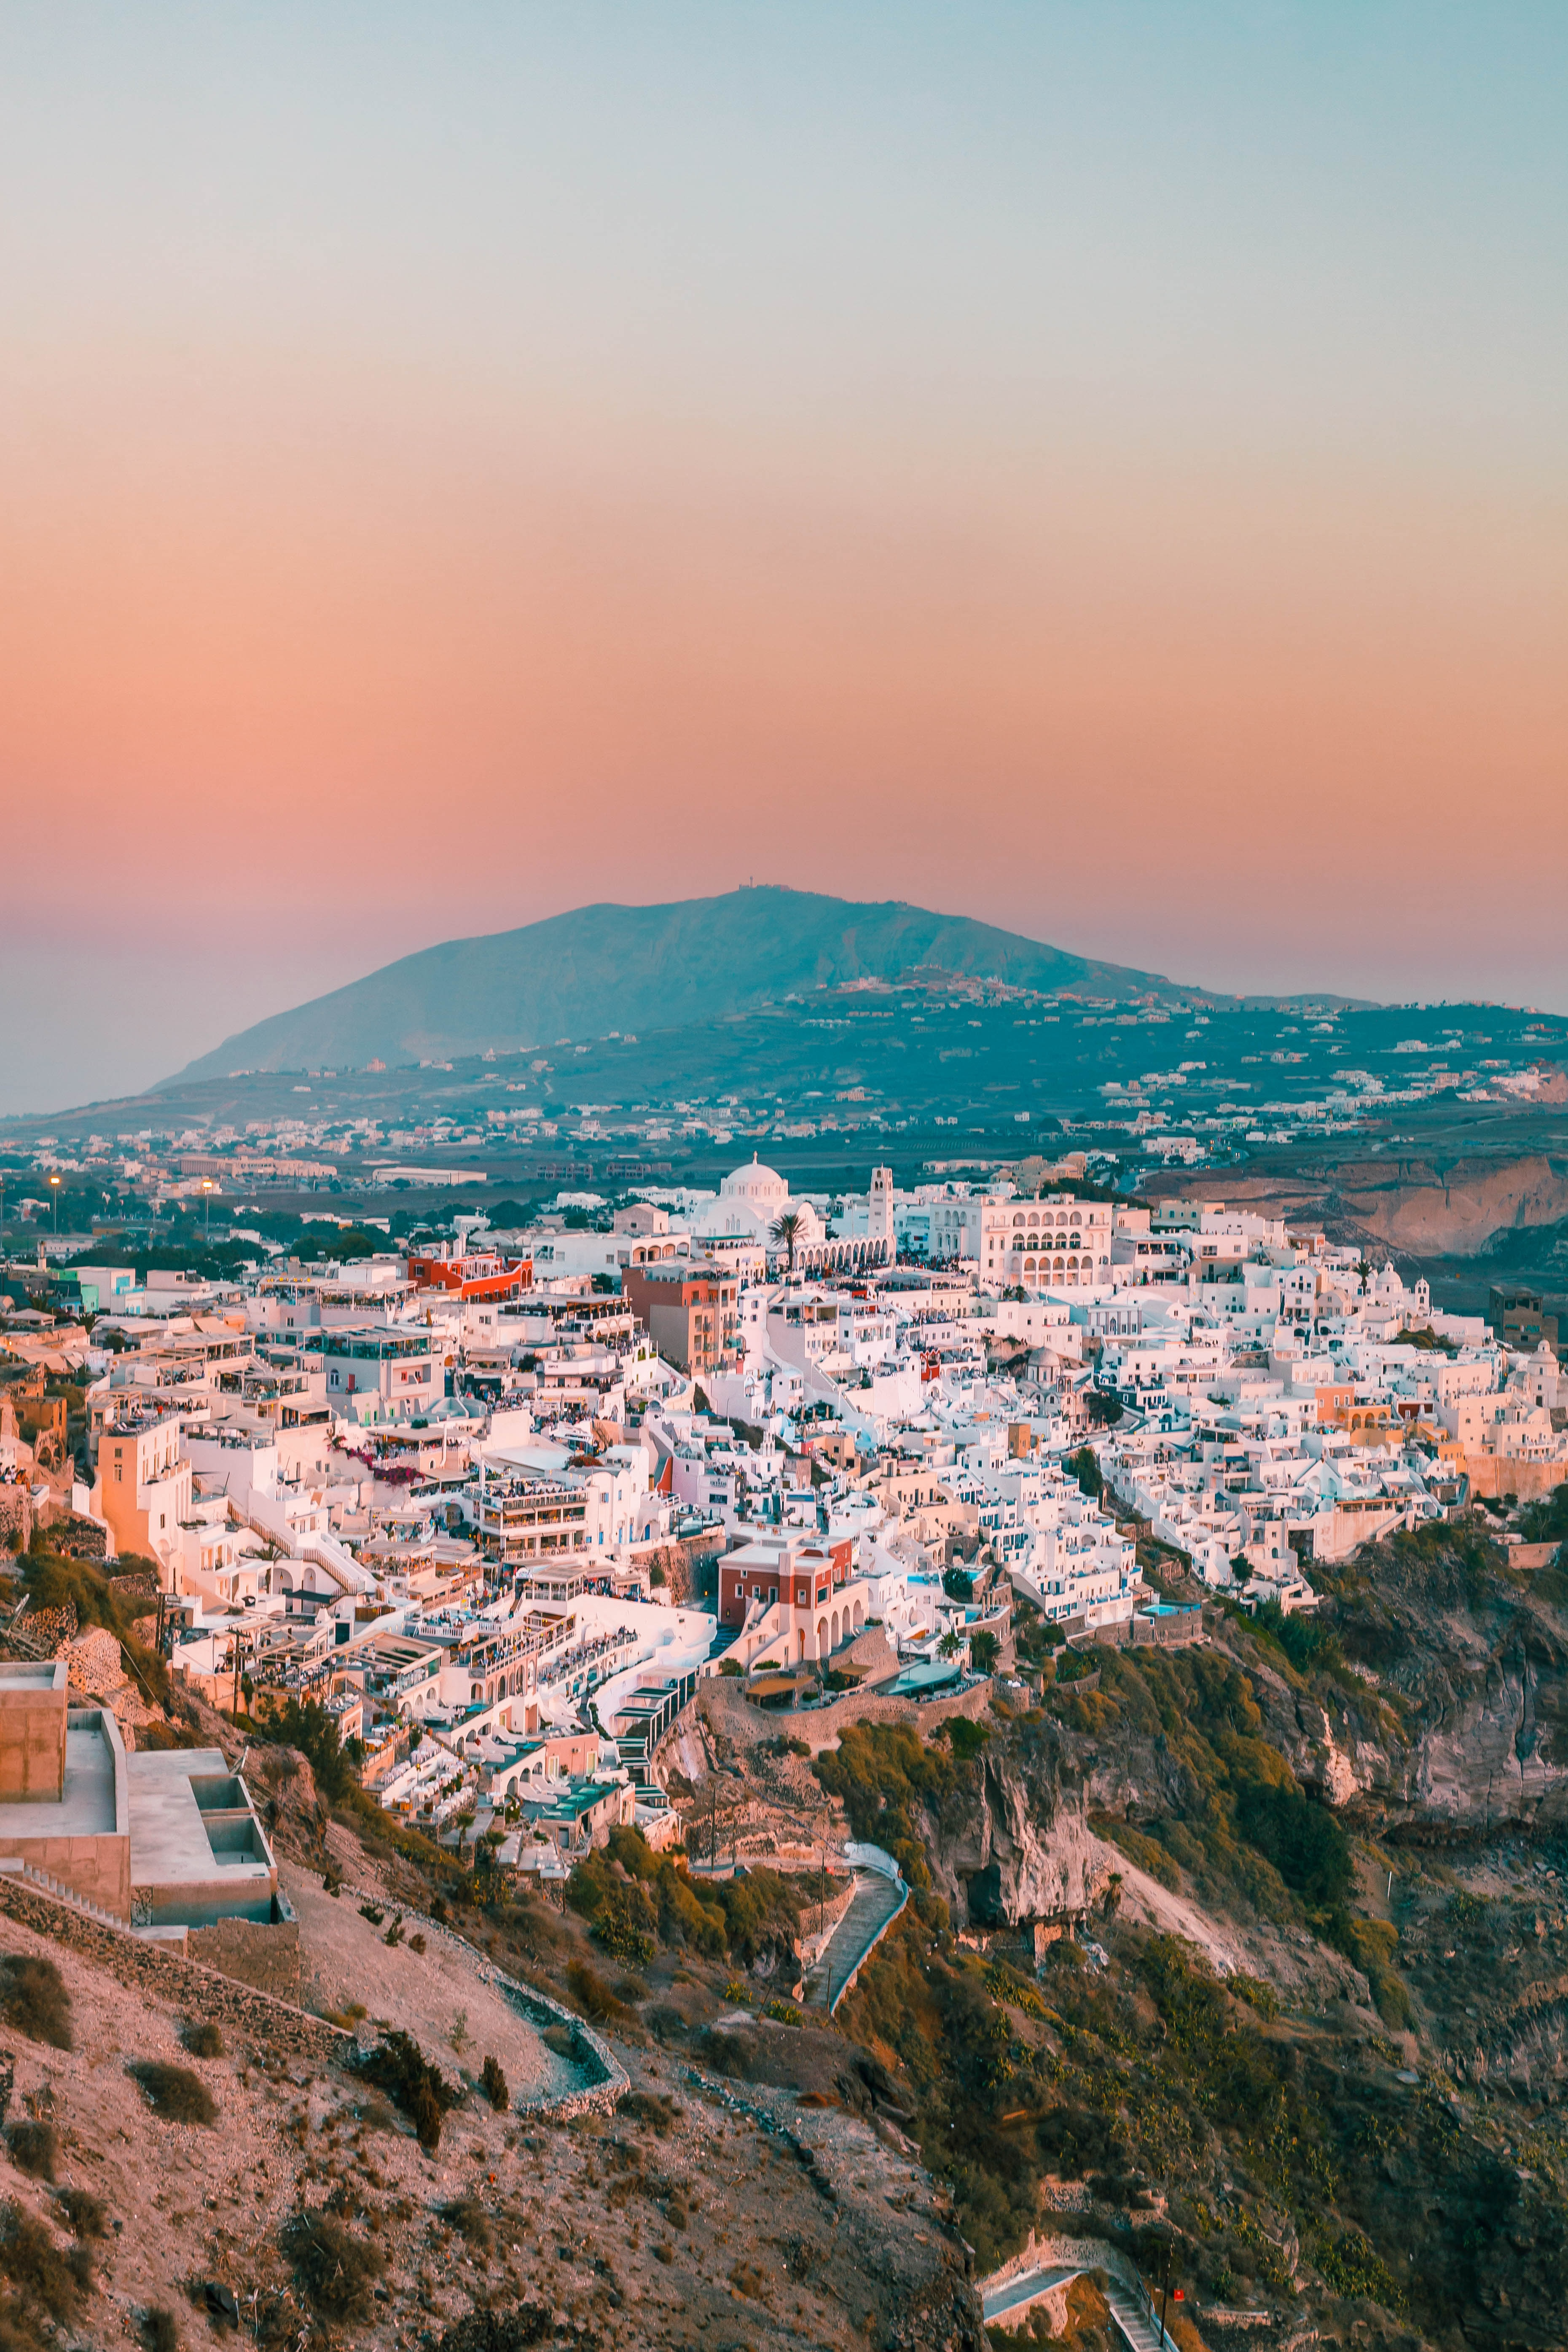 A Greek village built into a mountain side. In the background a dark mountain contrasts with the mostly white buildings below and the peach and light blue sky above.